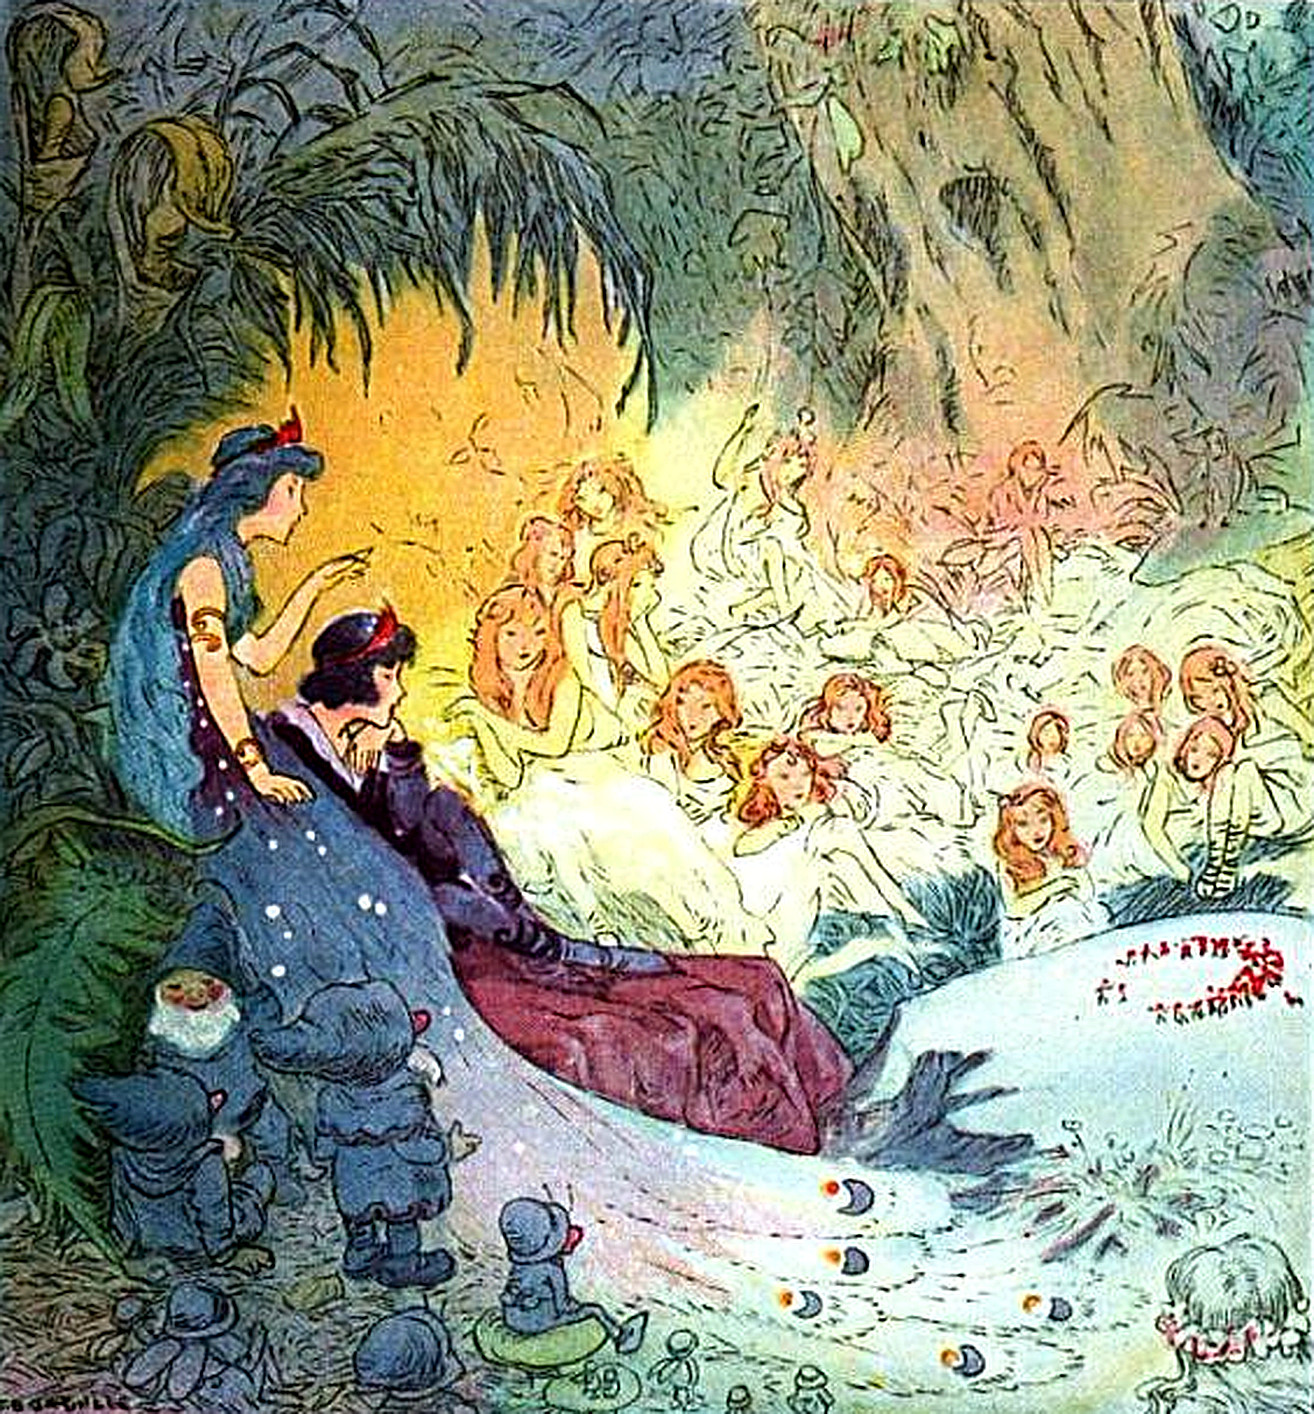 Snow White with Dwarfs and Fairies